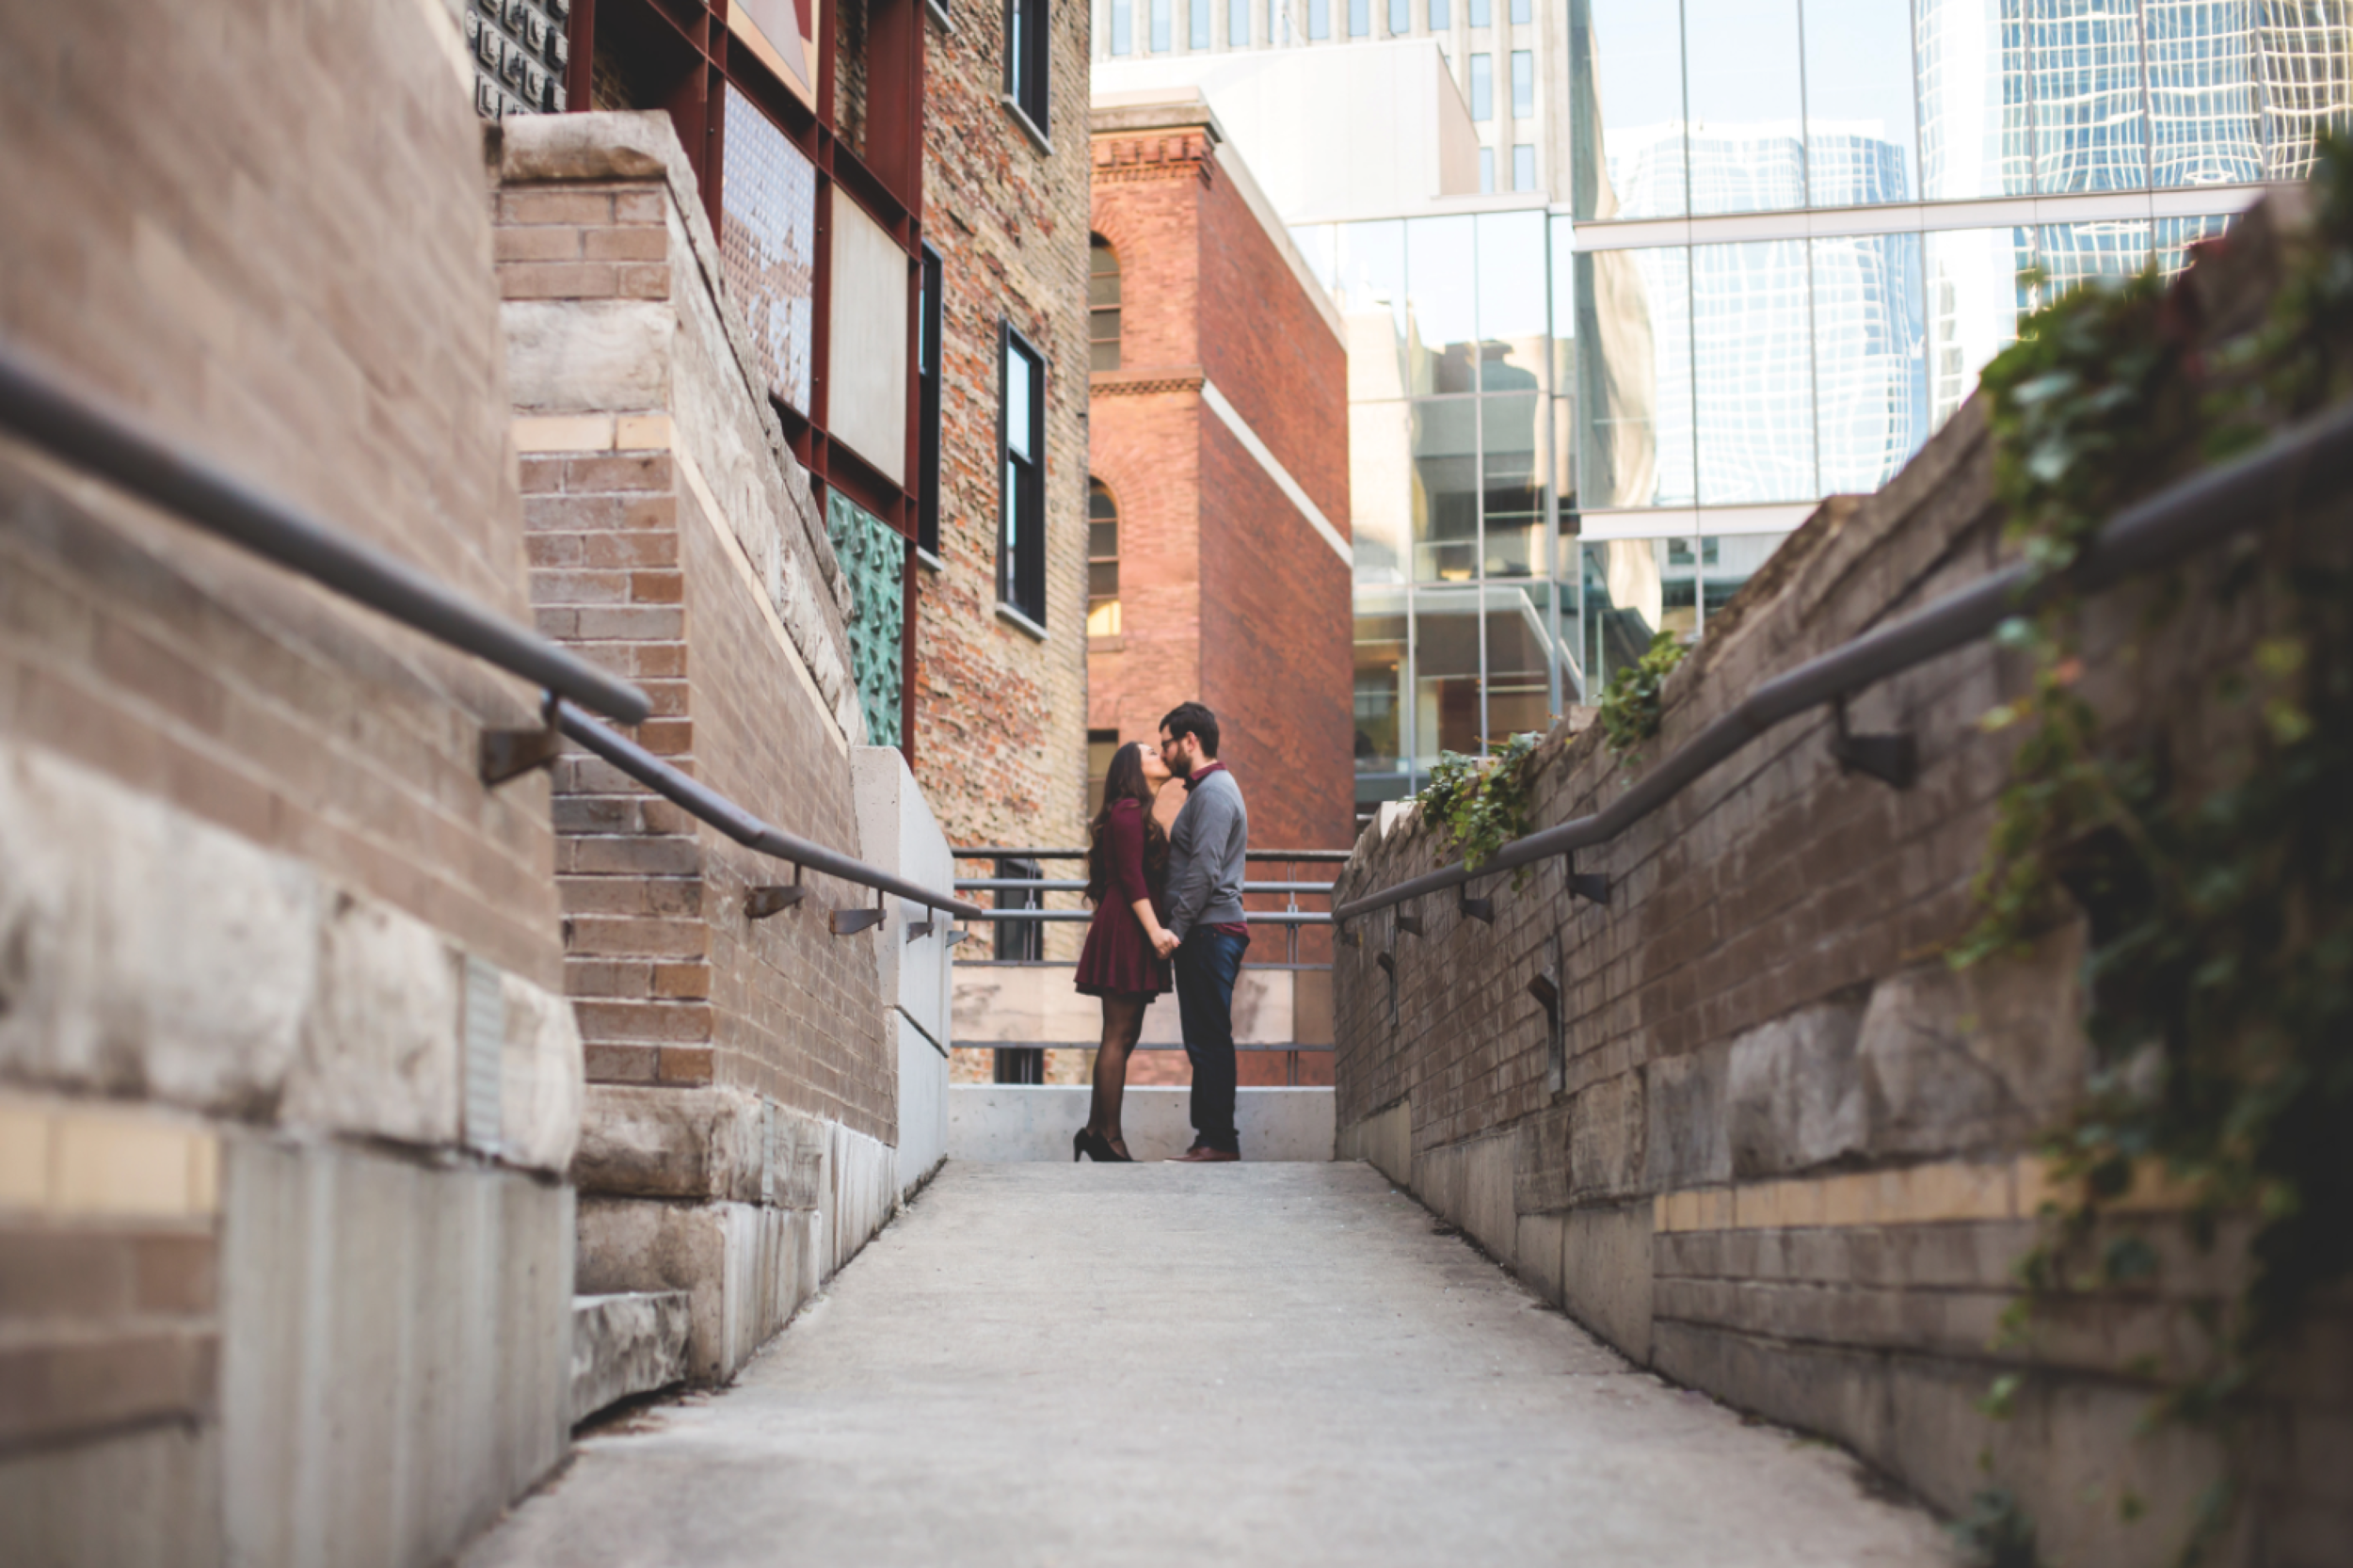 Engagement-Session-Hamilton-Burlington-Oakville-Niagara-Toronto-Wedding-Photographer-Engaged-Photography-Urban-Engaged-Downtown-Golden-Hour-Moments-by-Lauren-Photo-Image-8.png